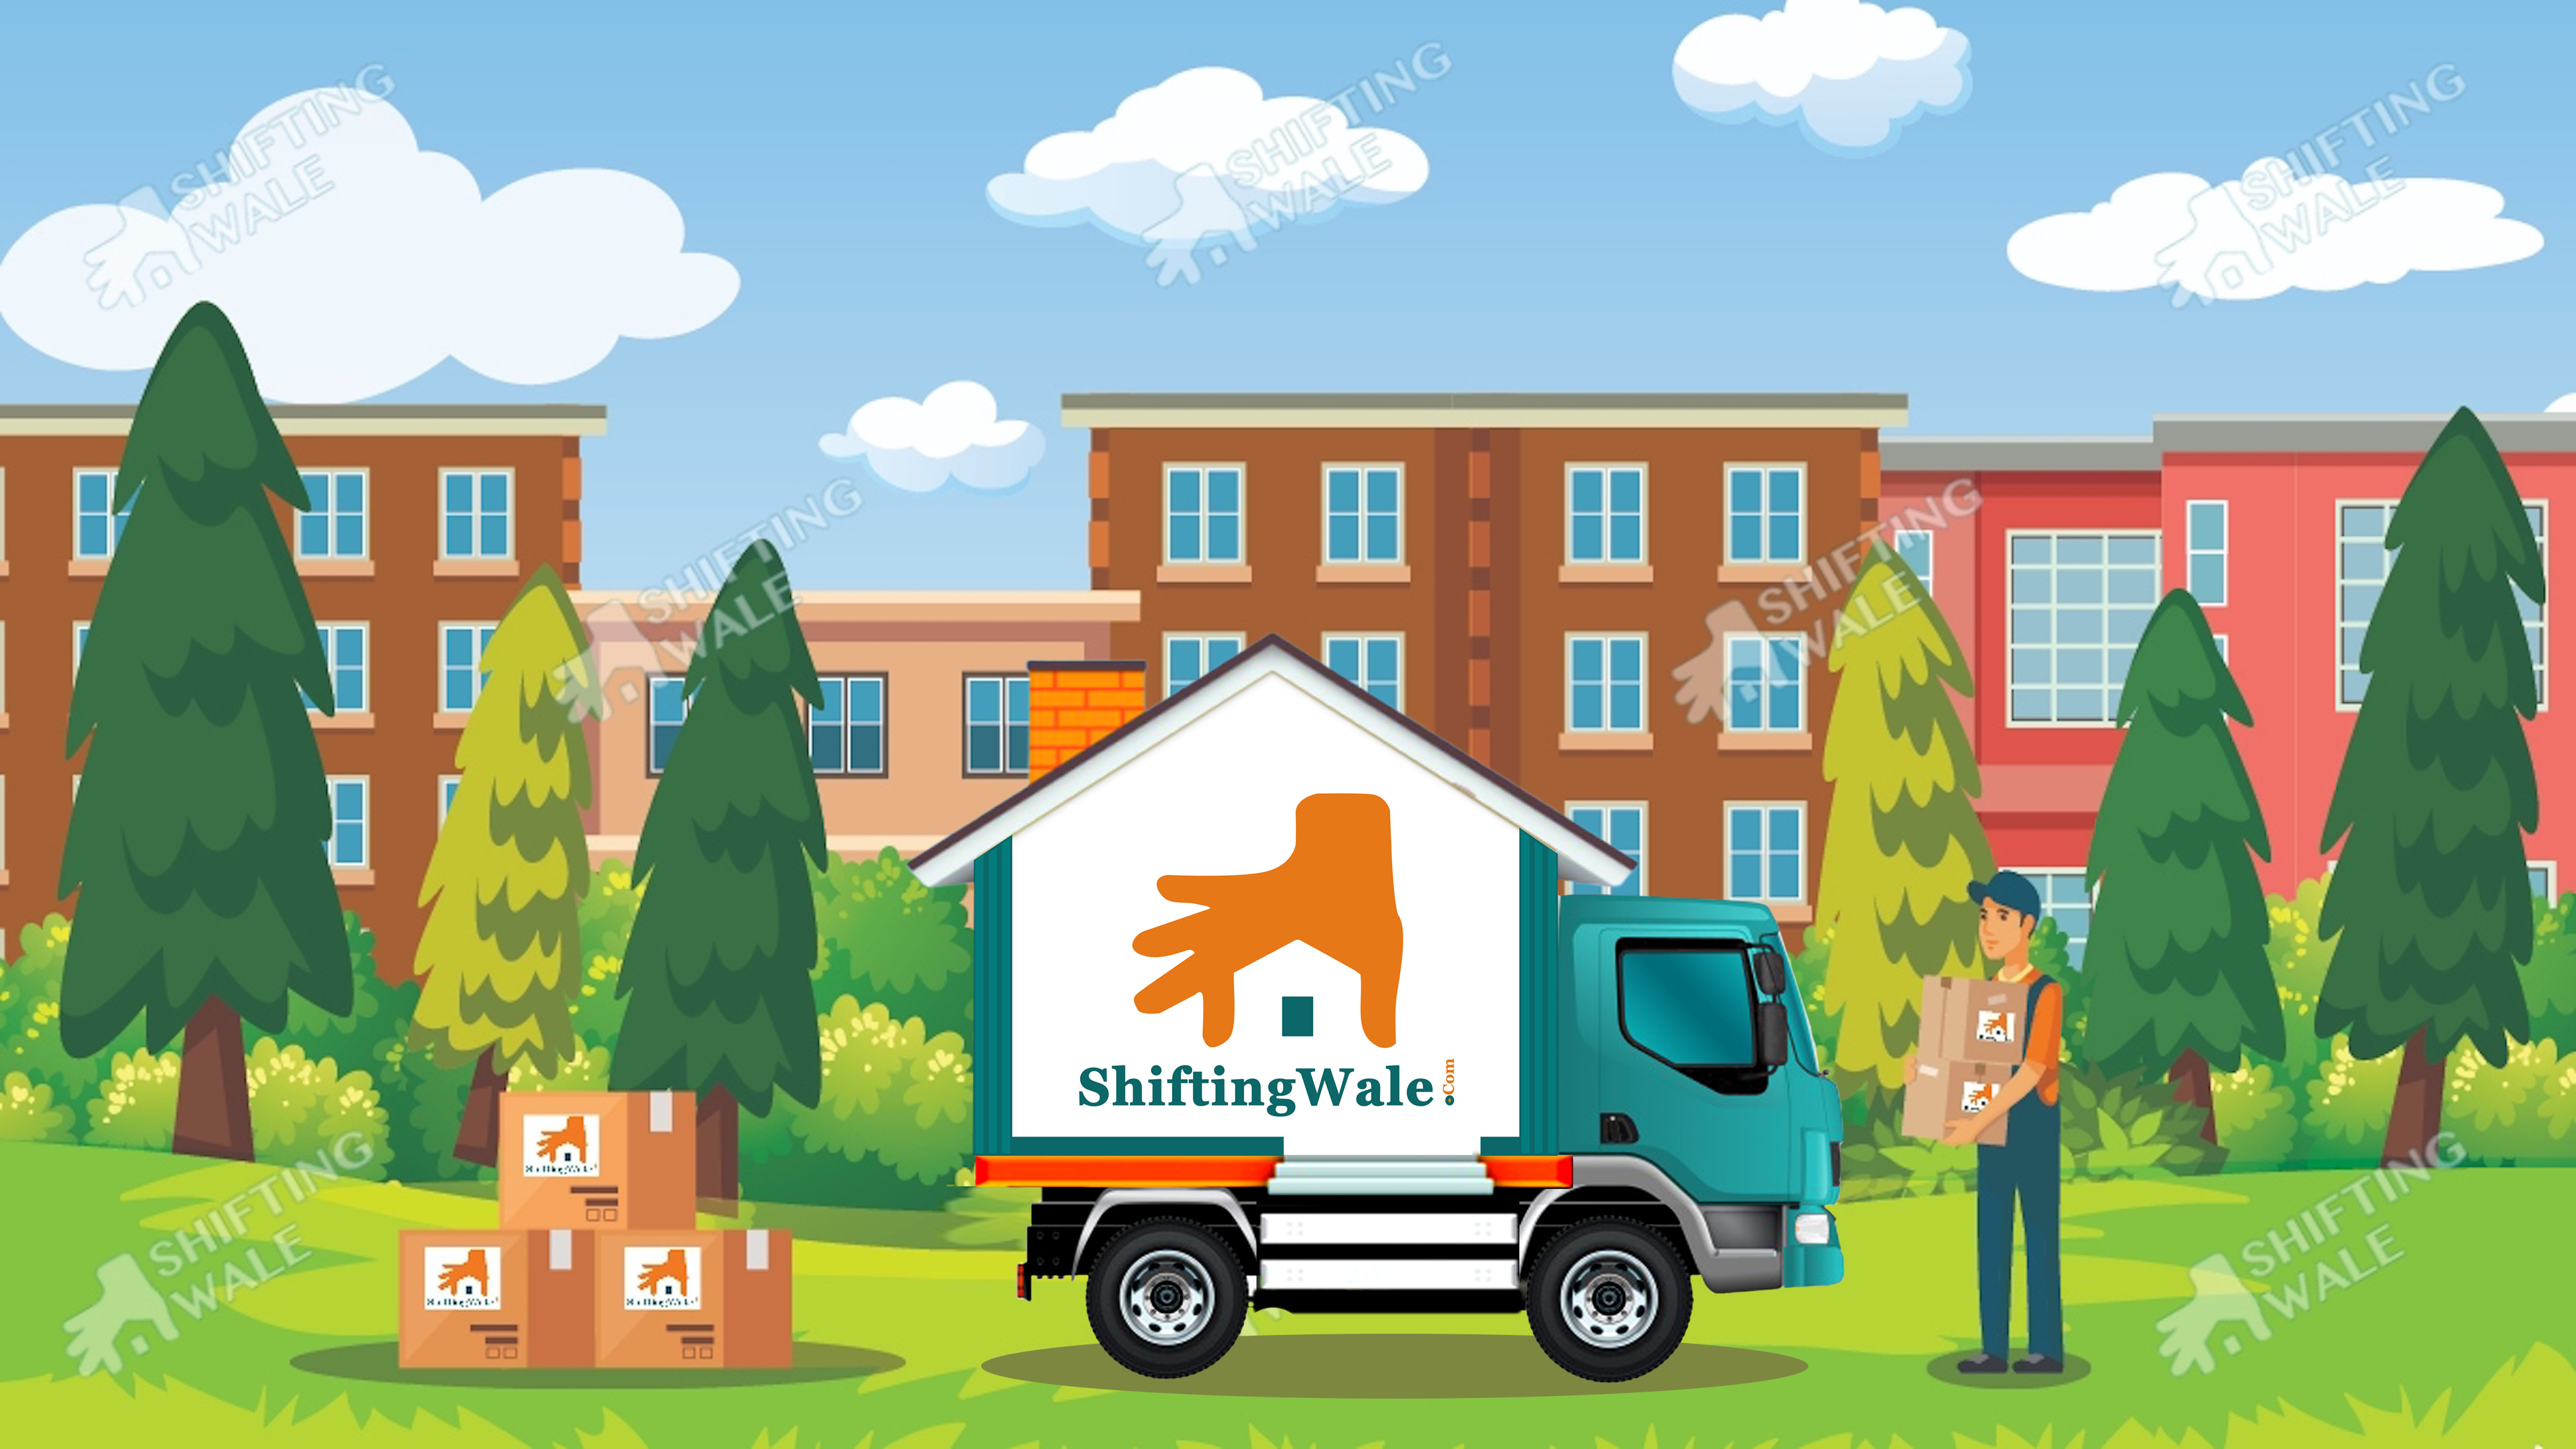 Need Packers and Movers for Household Goods Car From Delhi Gurugram Ghaziabad Noida to Agra Mathura Auraiya Etawah